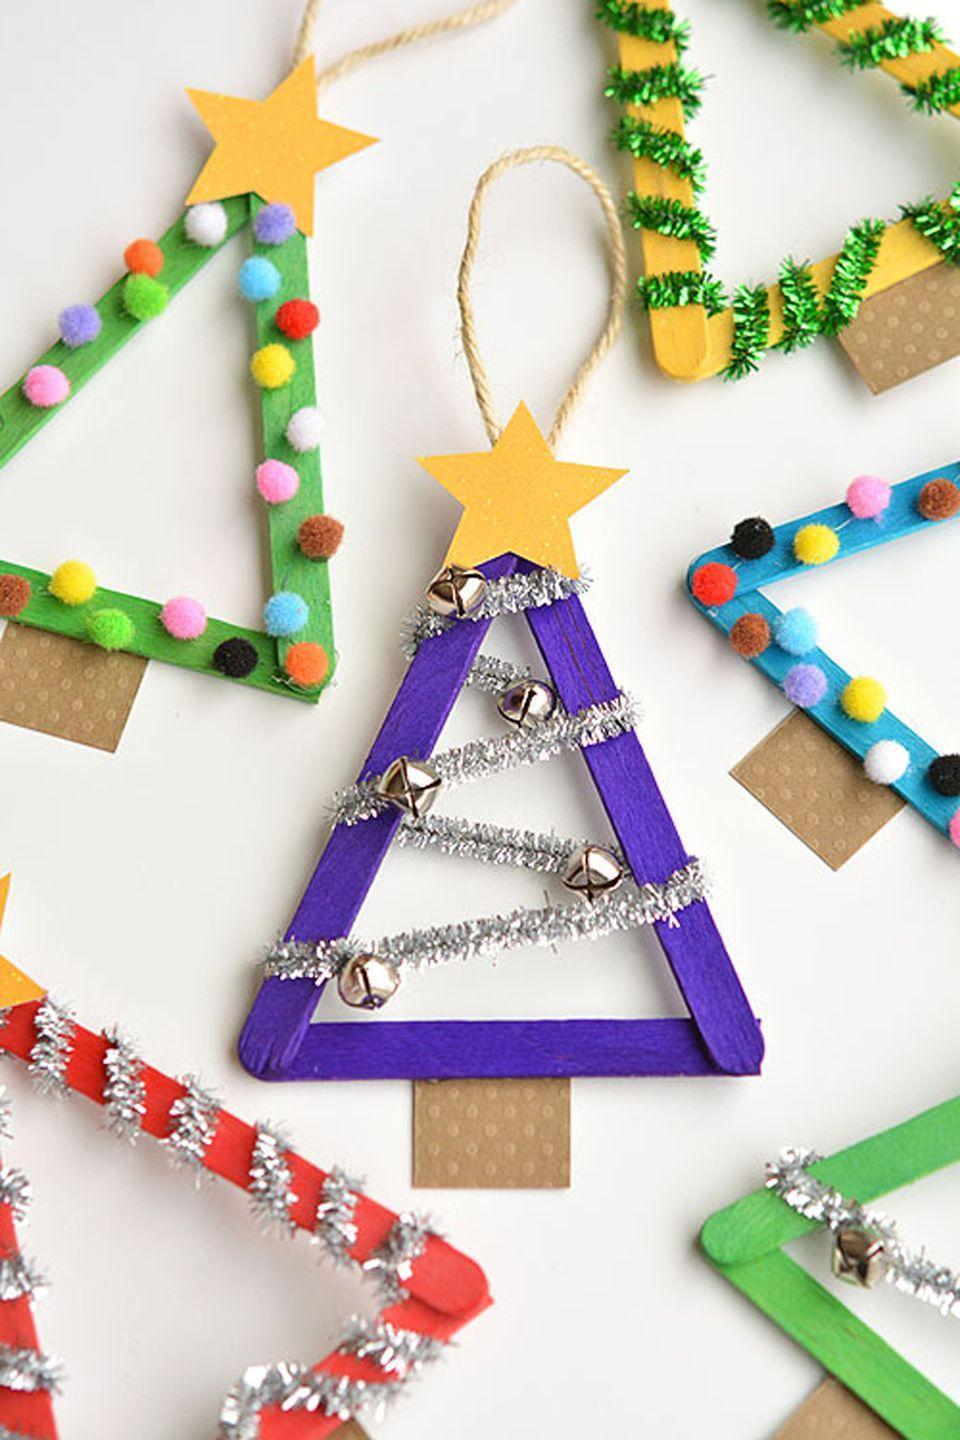 "<p><span class=""redactor-invisible-space"">Decorating these popsicle stick ornaments will be a special treat <span class=""redactor-invisible-space"">for your little helper.</span></span></p><p><strong>Get the tutorial at <a href=""http://onelittleproject.com/popsicle-stick-christmas-trees/"" rel=""nofollow noopener"" target=""_blank"" data-ylk=""slk:One Little Project"" class=""link rapid-noclick-resp"">One Little Project</a>.</strong></p>"